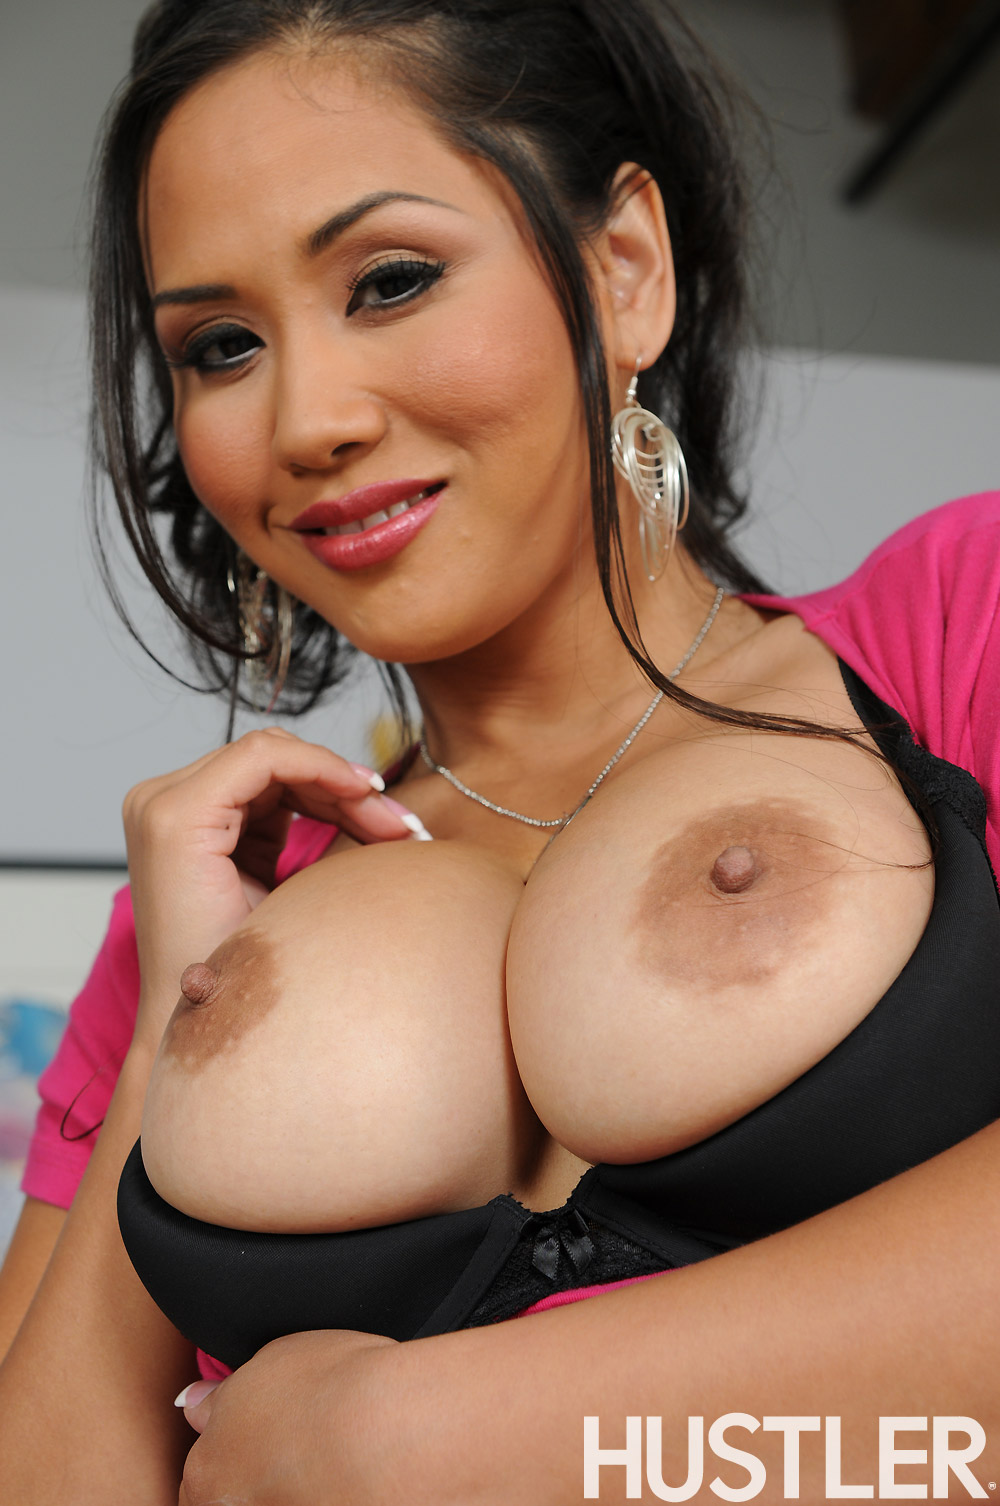 famous asian porn stars ebony - Hot asian porn stars nude